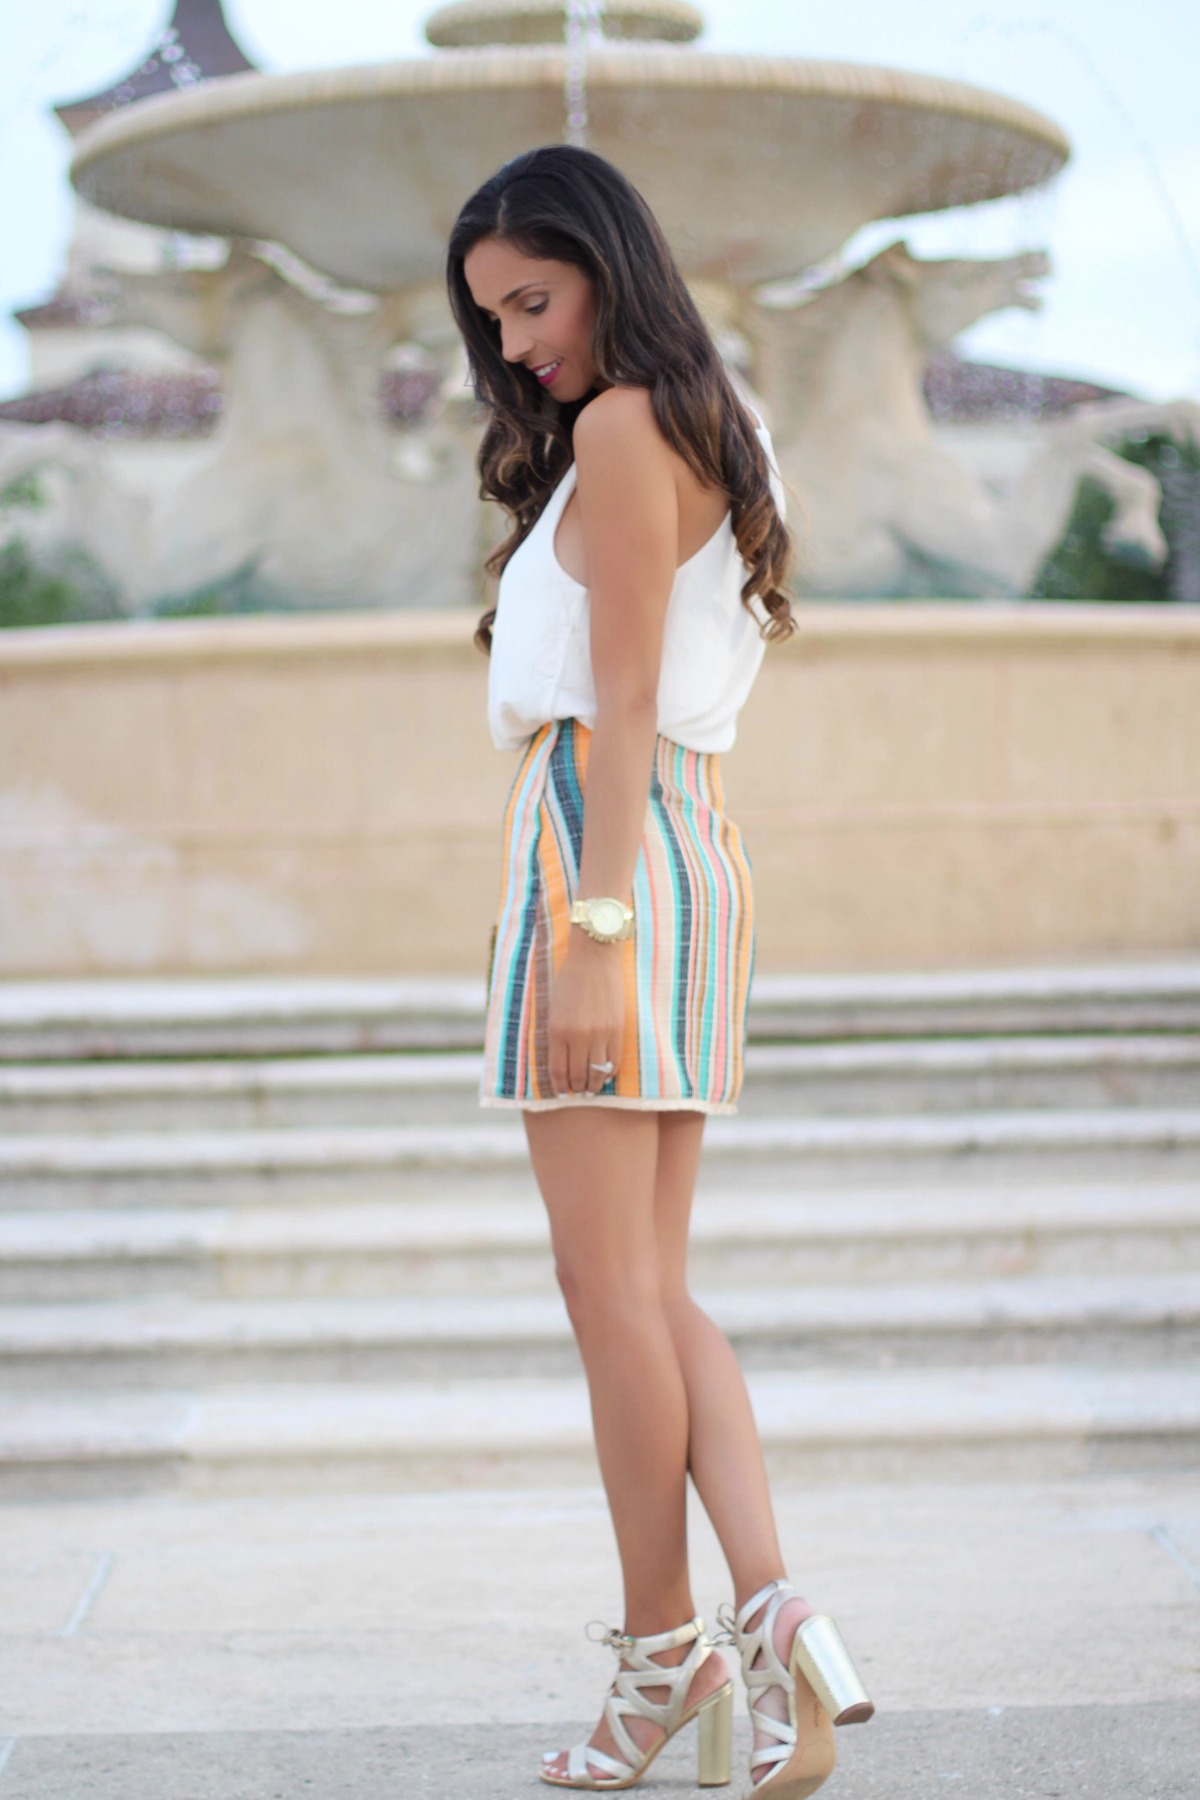 White v-neck camisole top and multicolor striped skirt in Palm Beach, FL